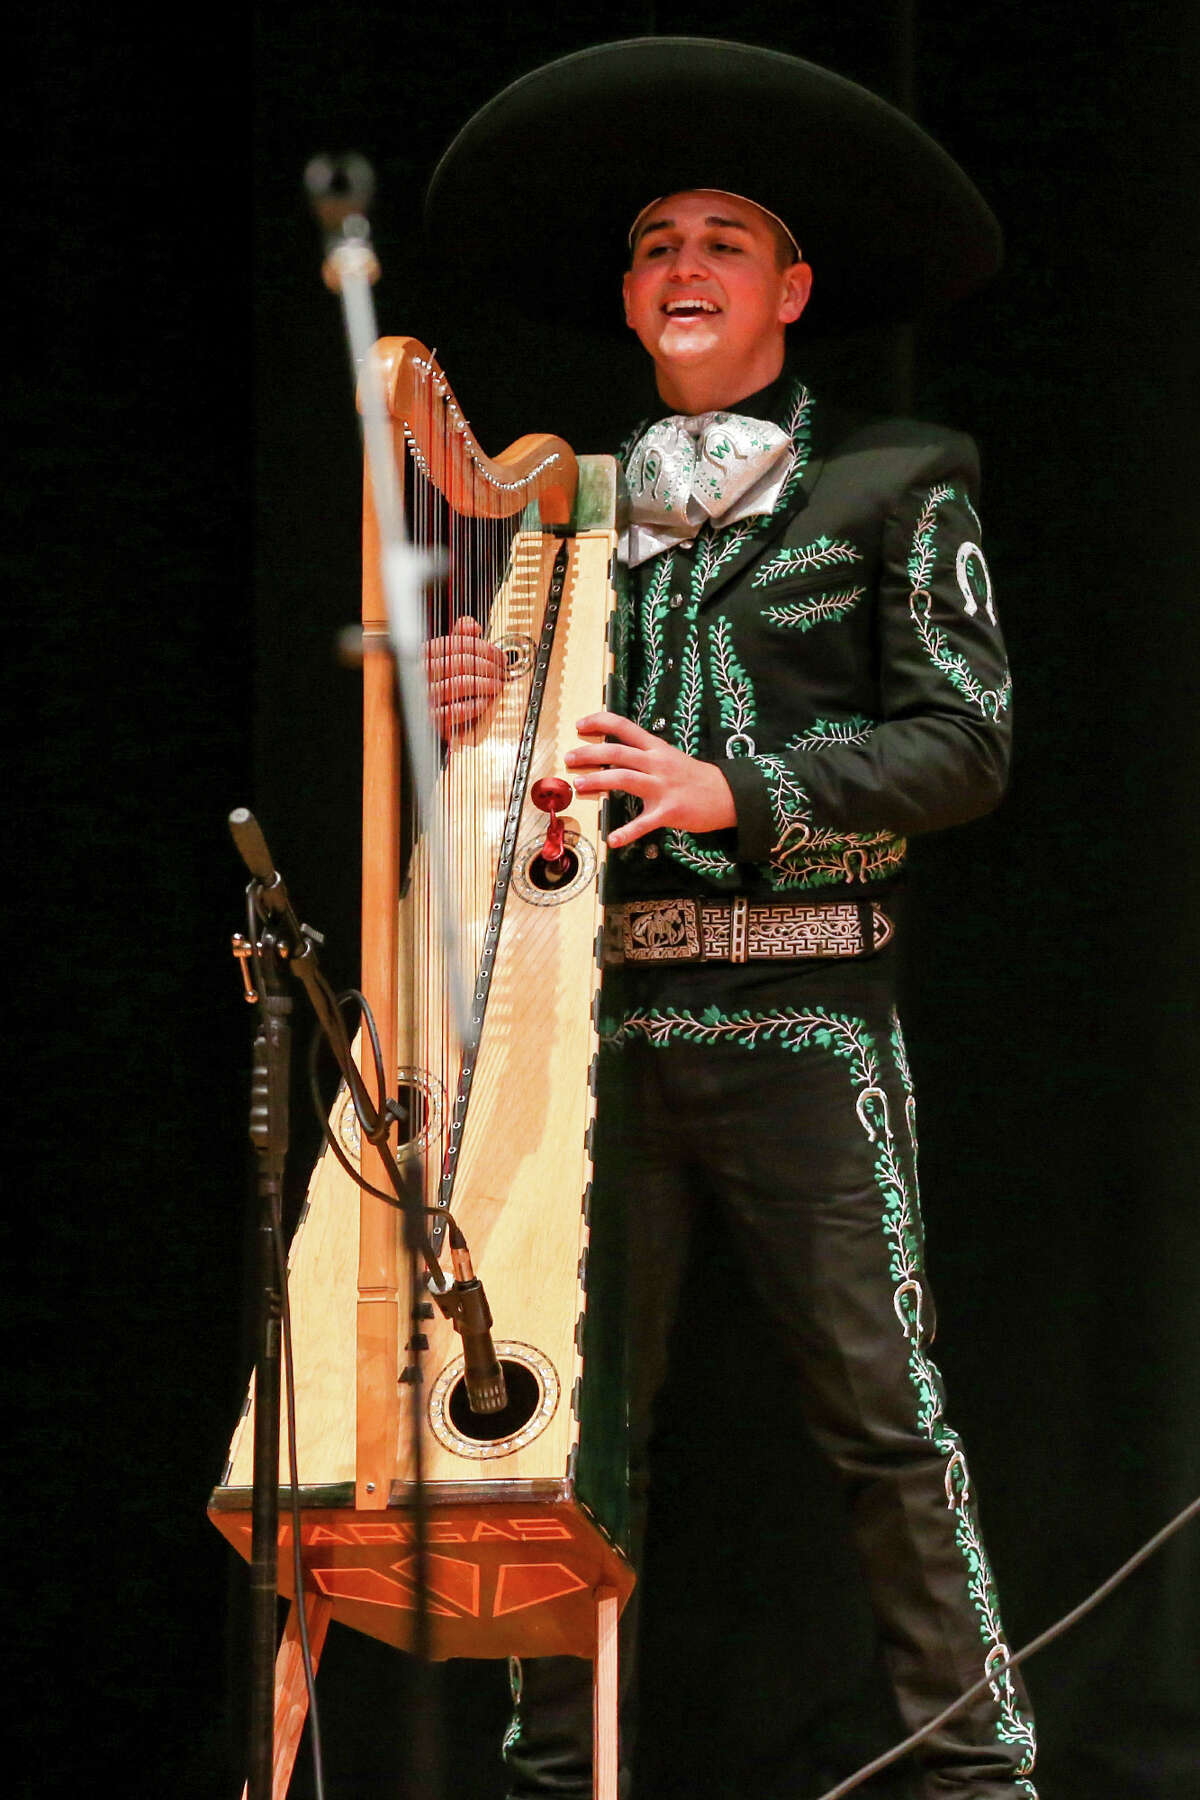 The Southwest High School Mariachi Los Dragones perform during the 2015 Texas High School Mariachi Competition Finals at Southwest High School on Saturday, Feb. 7, 2015. Southwest finished fifth in this year's competition. MARVIN PFEIFFER/ mpfeiffer@express-news.net